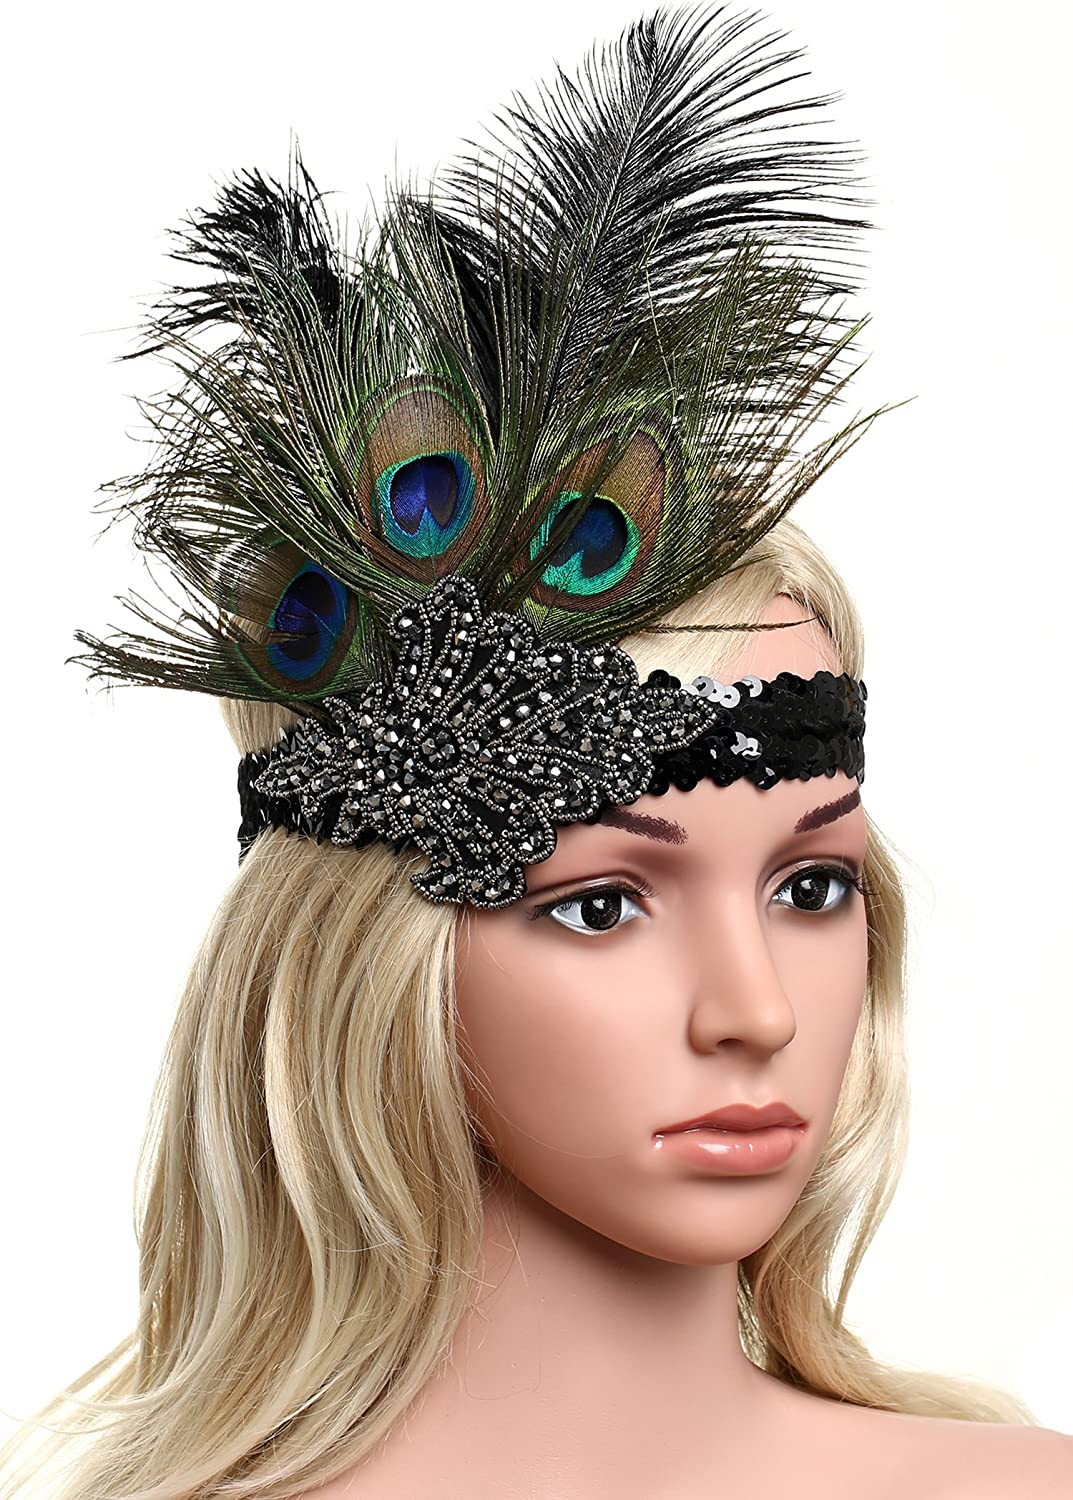 1920s Flapper Costume : How to Guide BABEYOND 1920s Flapper Peacock Feather Headband 20s Sequined Showgirl Headpiece $11.99 AT vintagedancer.com